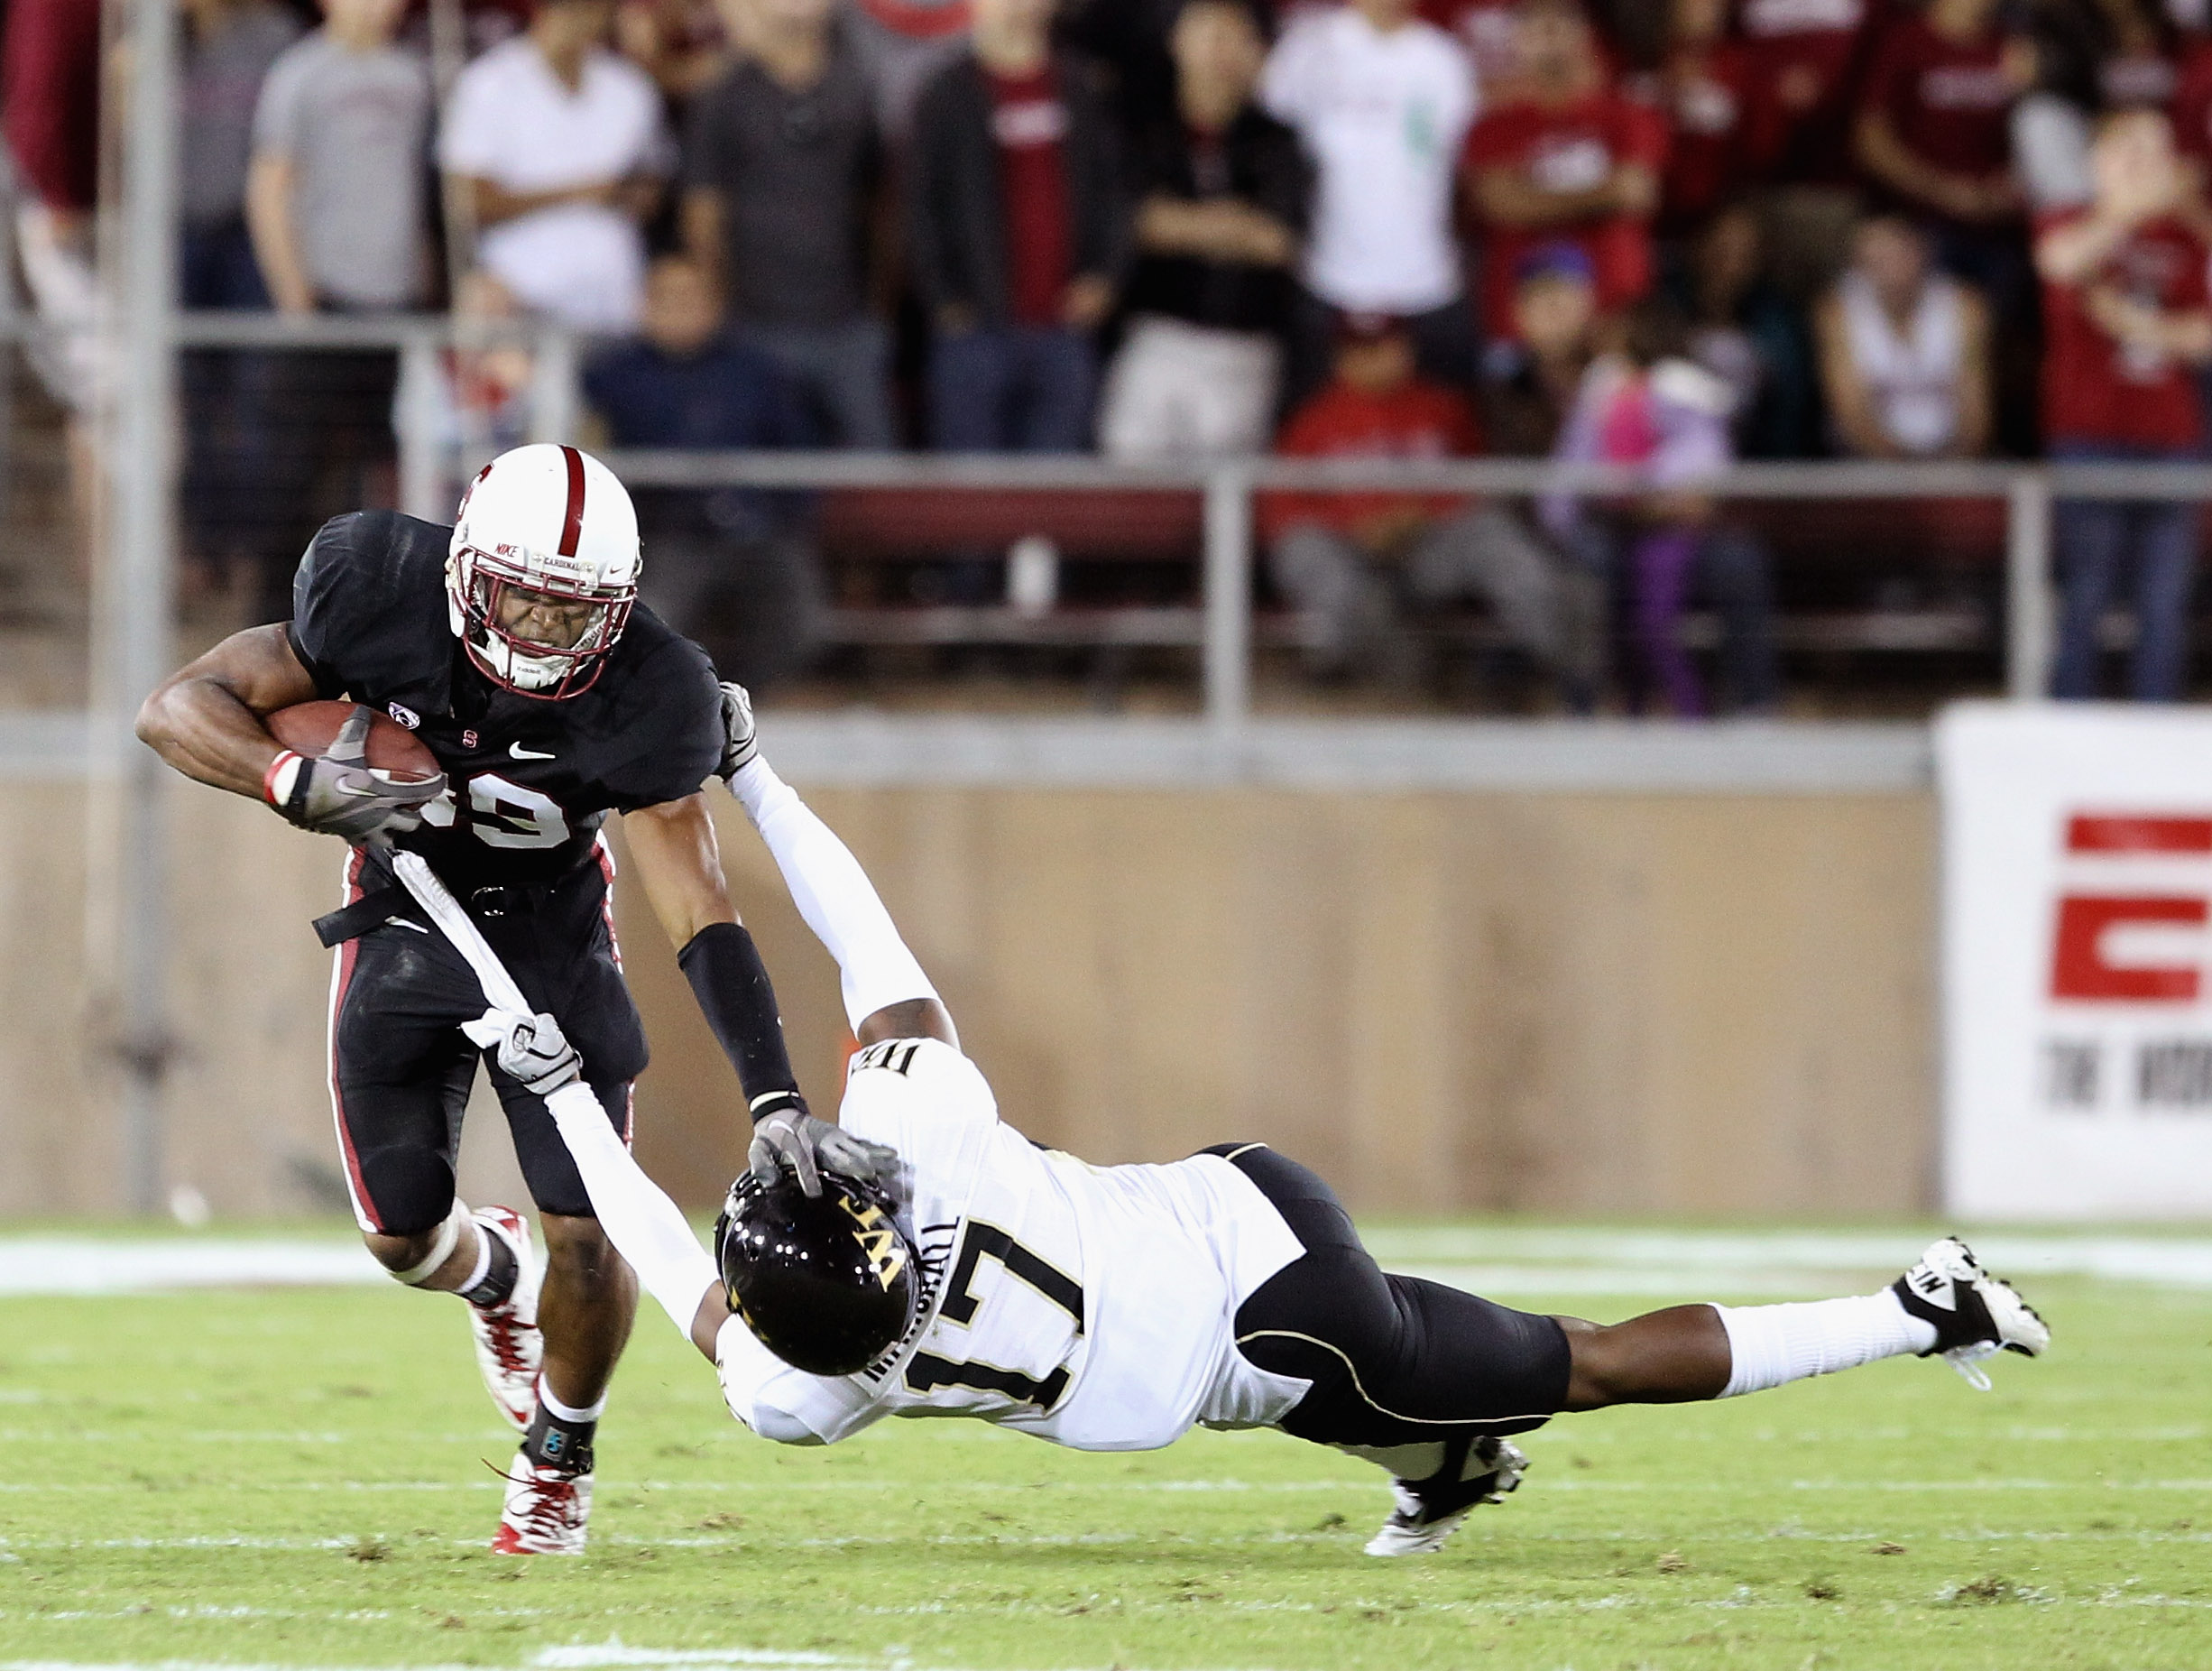 PALO ALTO, CA - SEPTEMBER 18:  Doug Baldwin #89of the Stanford Cardinal tries to fend off A.J. Marshall #17 of the Wake Forest Demon Deacons at Stanford Stadium on September 18, 2010 in Palo Alto, California.  (Photo by Ezra Shaw/Getty Images)